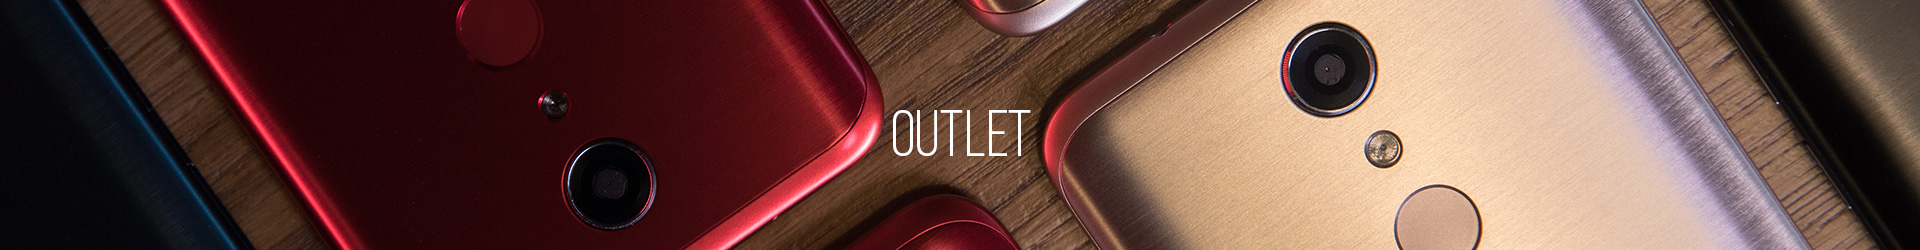 Outlet Smartphones